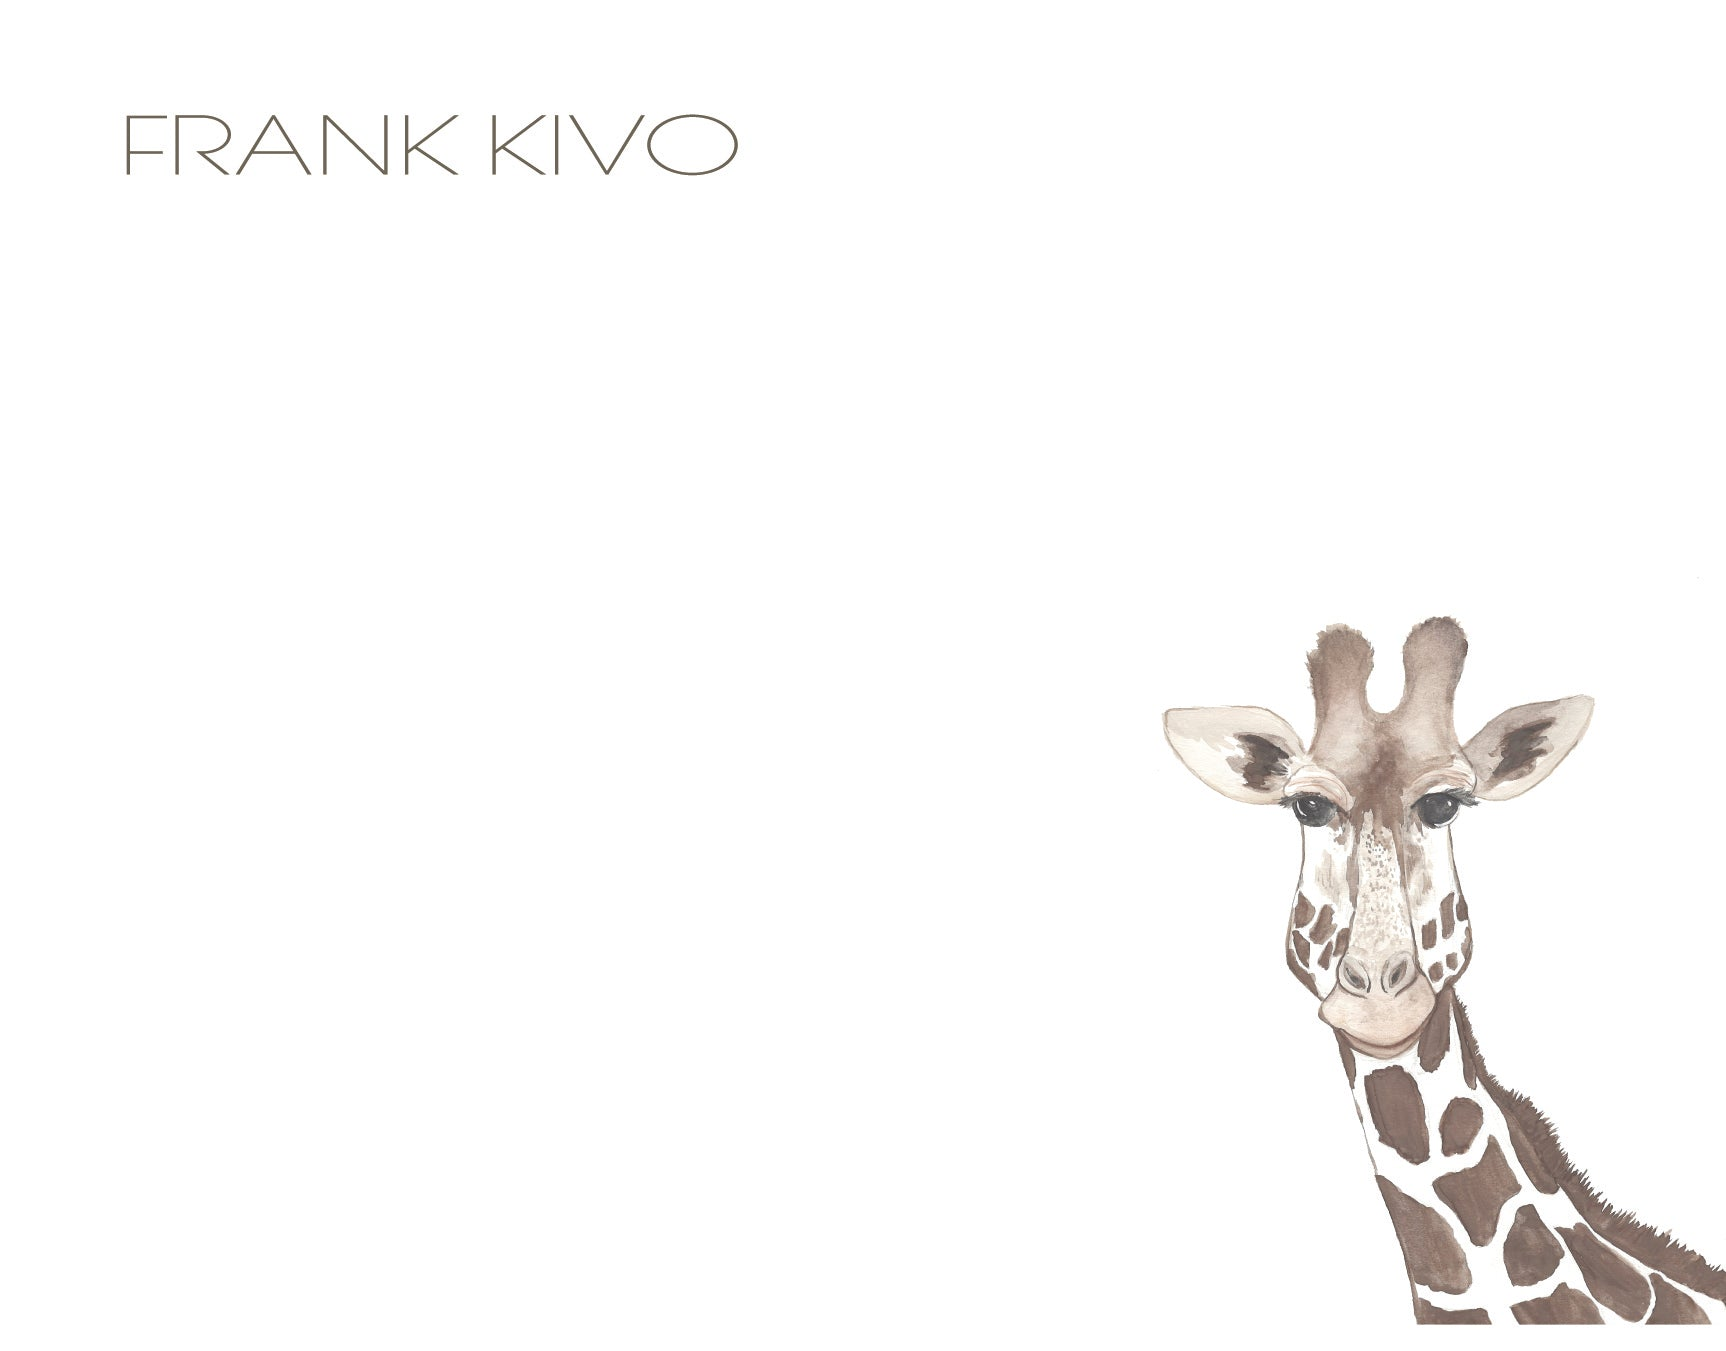 Personalized Giraffe Note Card set